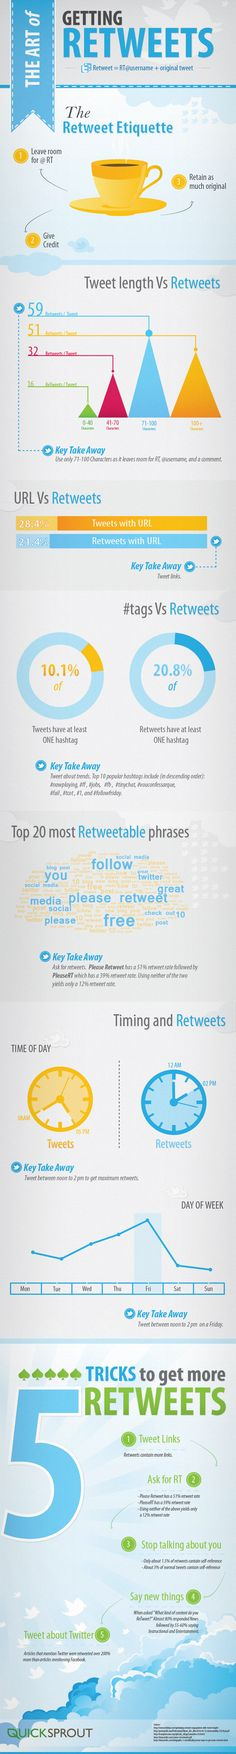 The Art of Getting Retweeted.